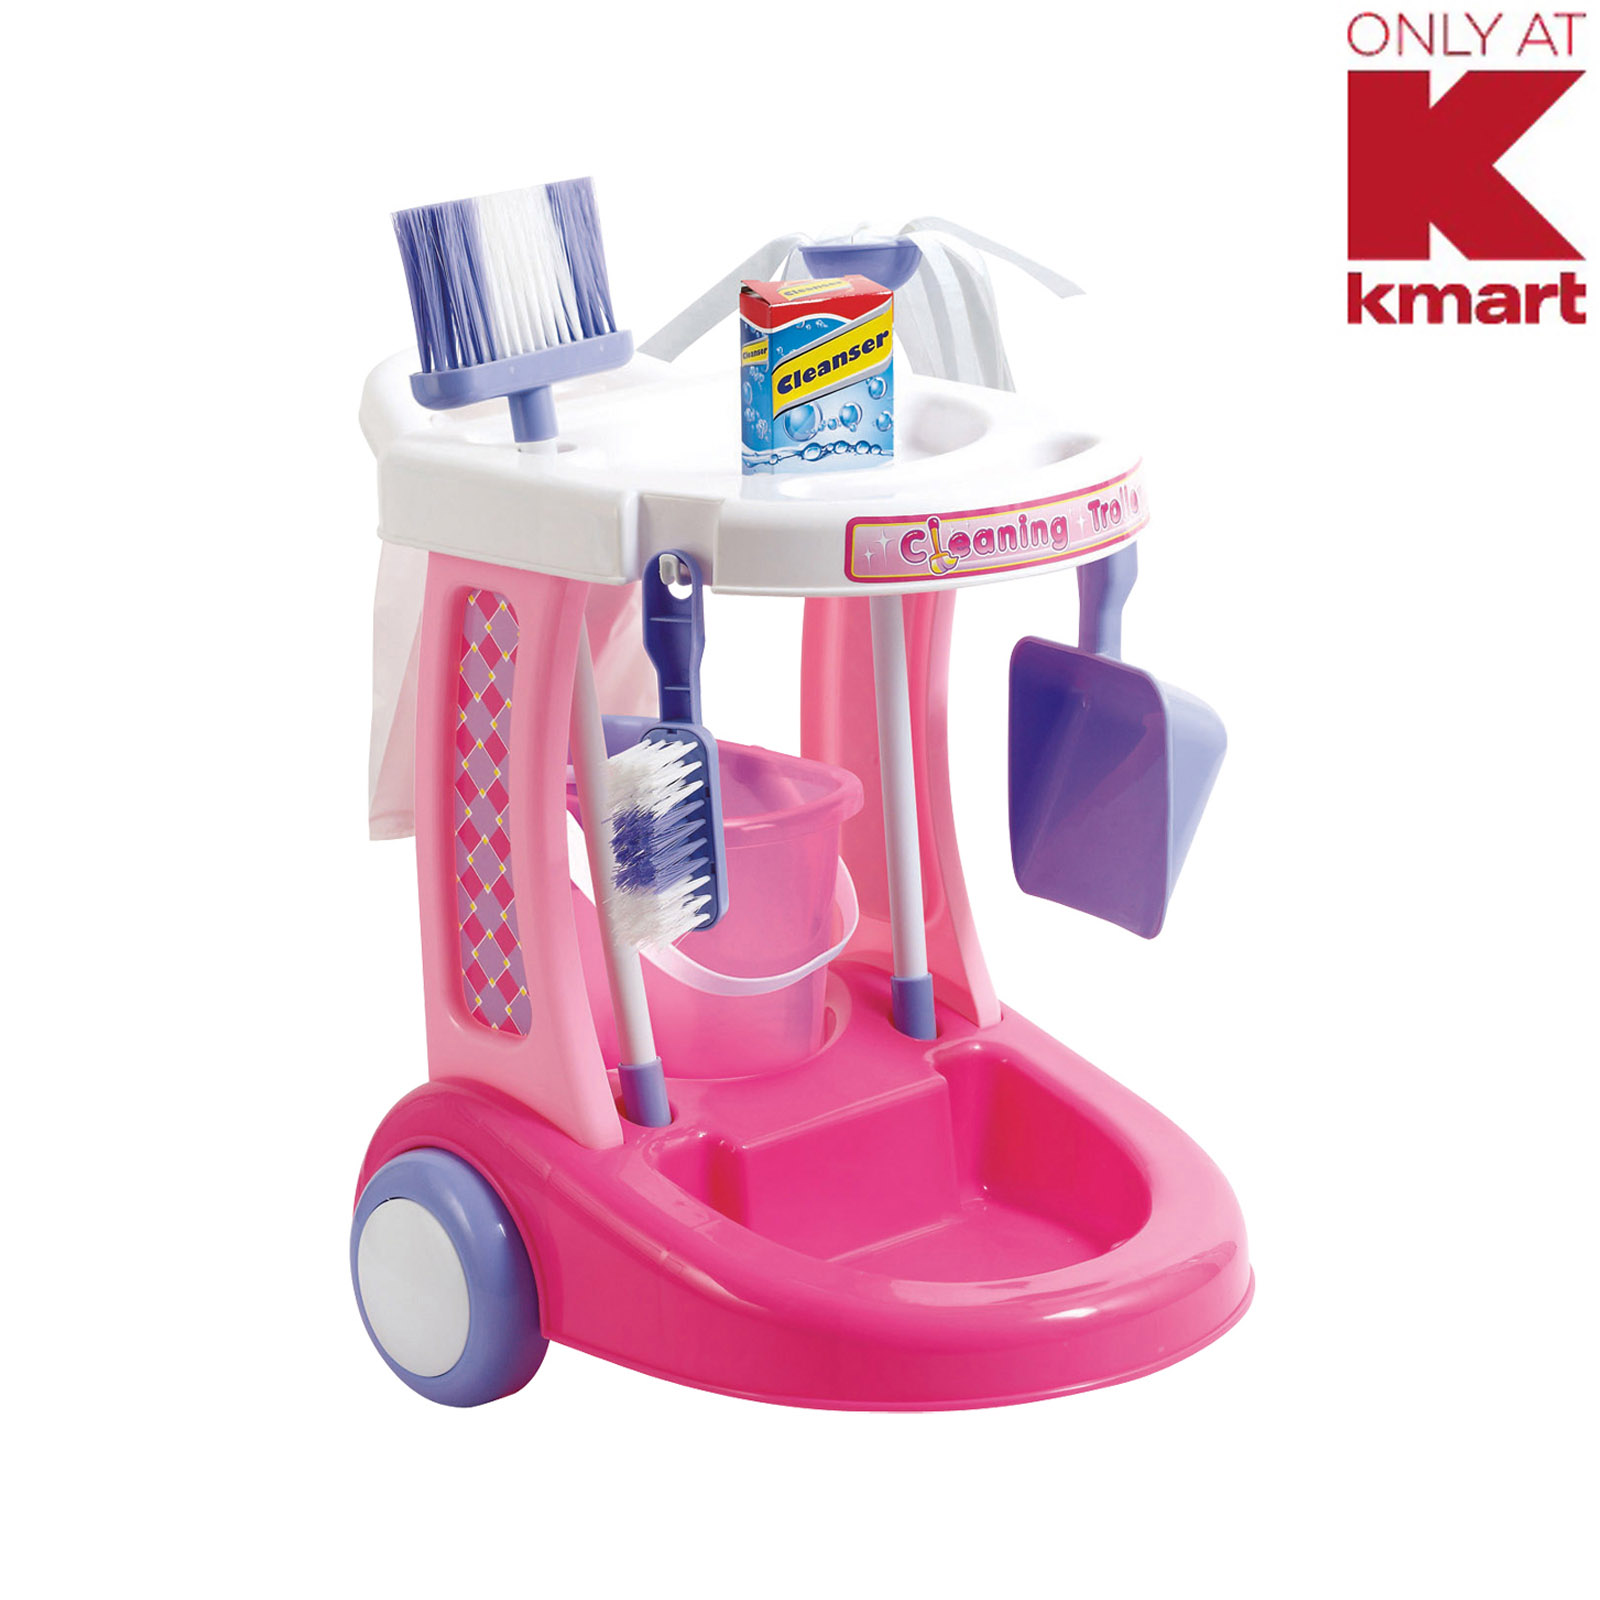 Toys R Us Kids Chairs Just Kidz My Cleaning Trolley Toys And Games Pretend